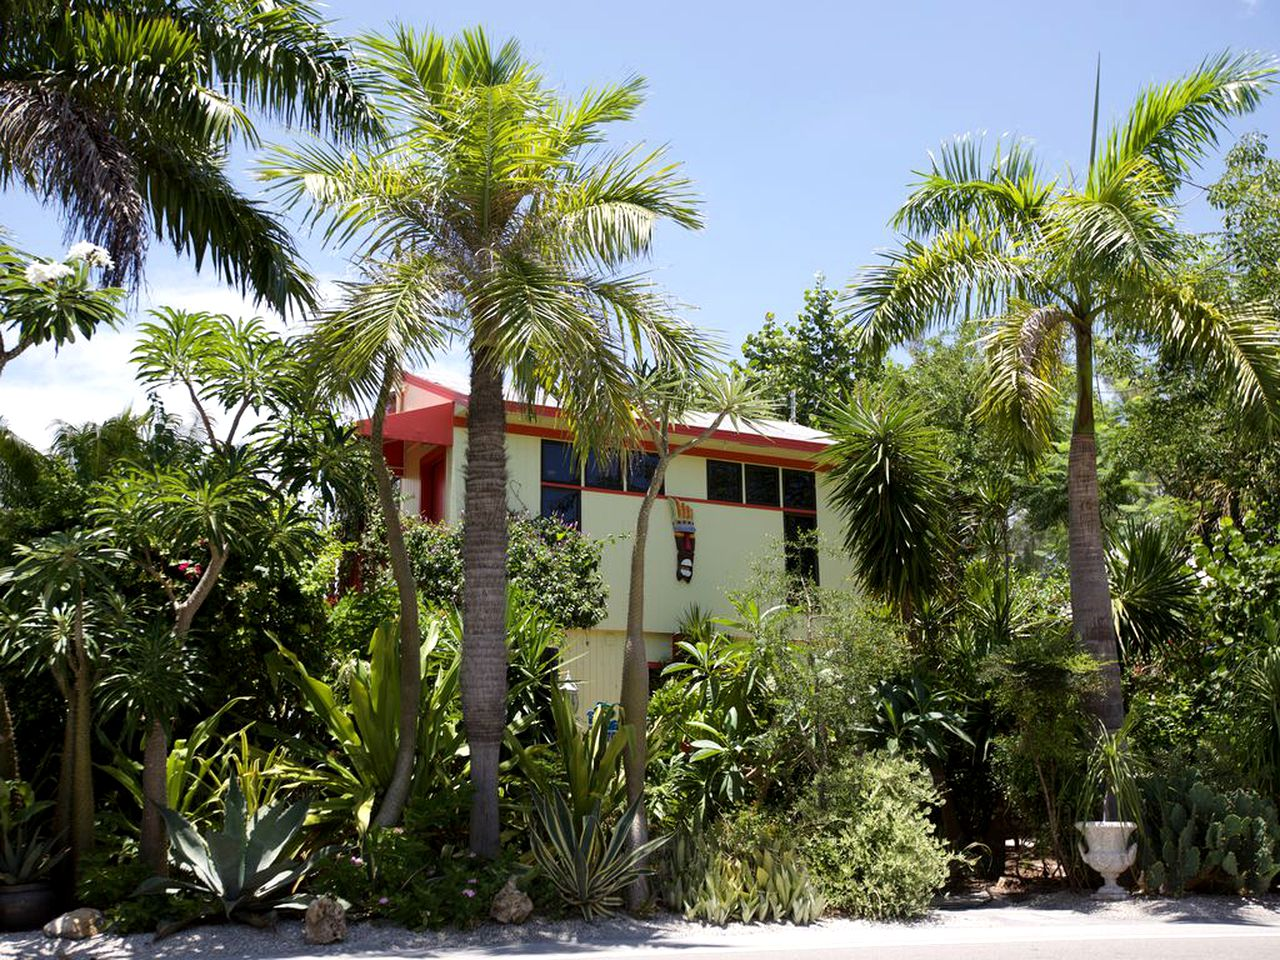 Vacation rental surrounded by palm trees on Captiva Island, Florida.